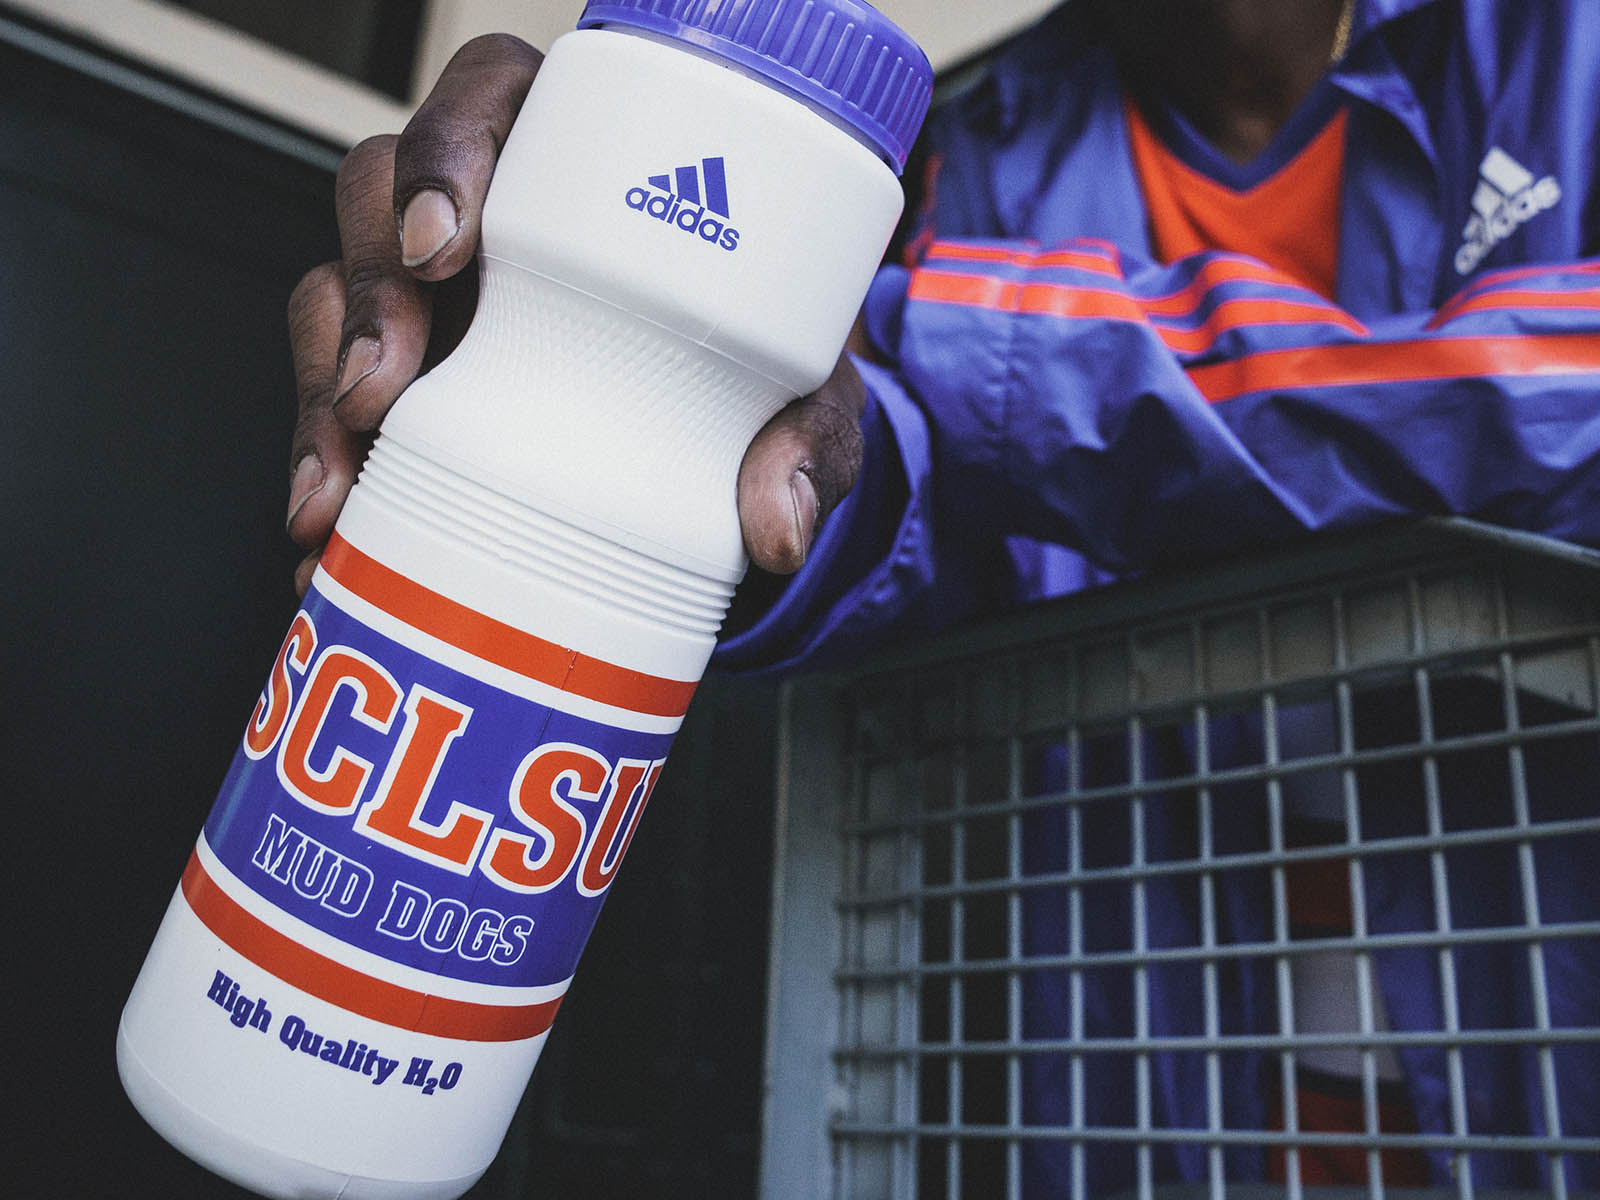 fab246fc2 Adidas unveils  The Waterboy  collection to celebrate 20th ...